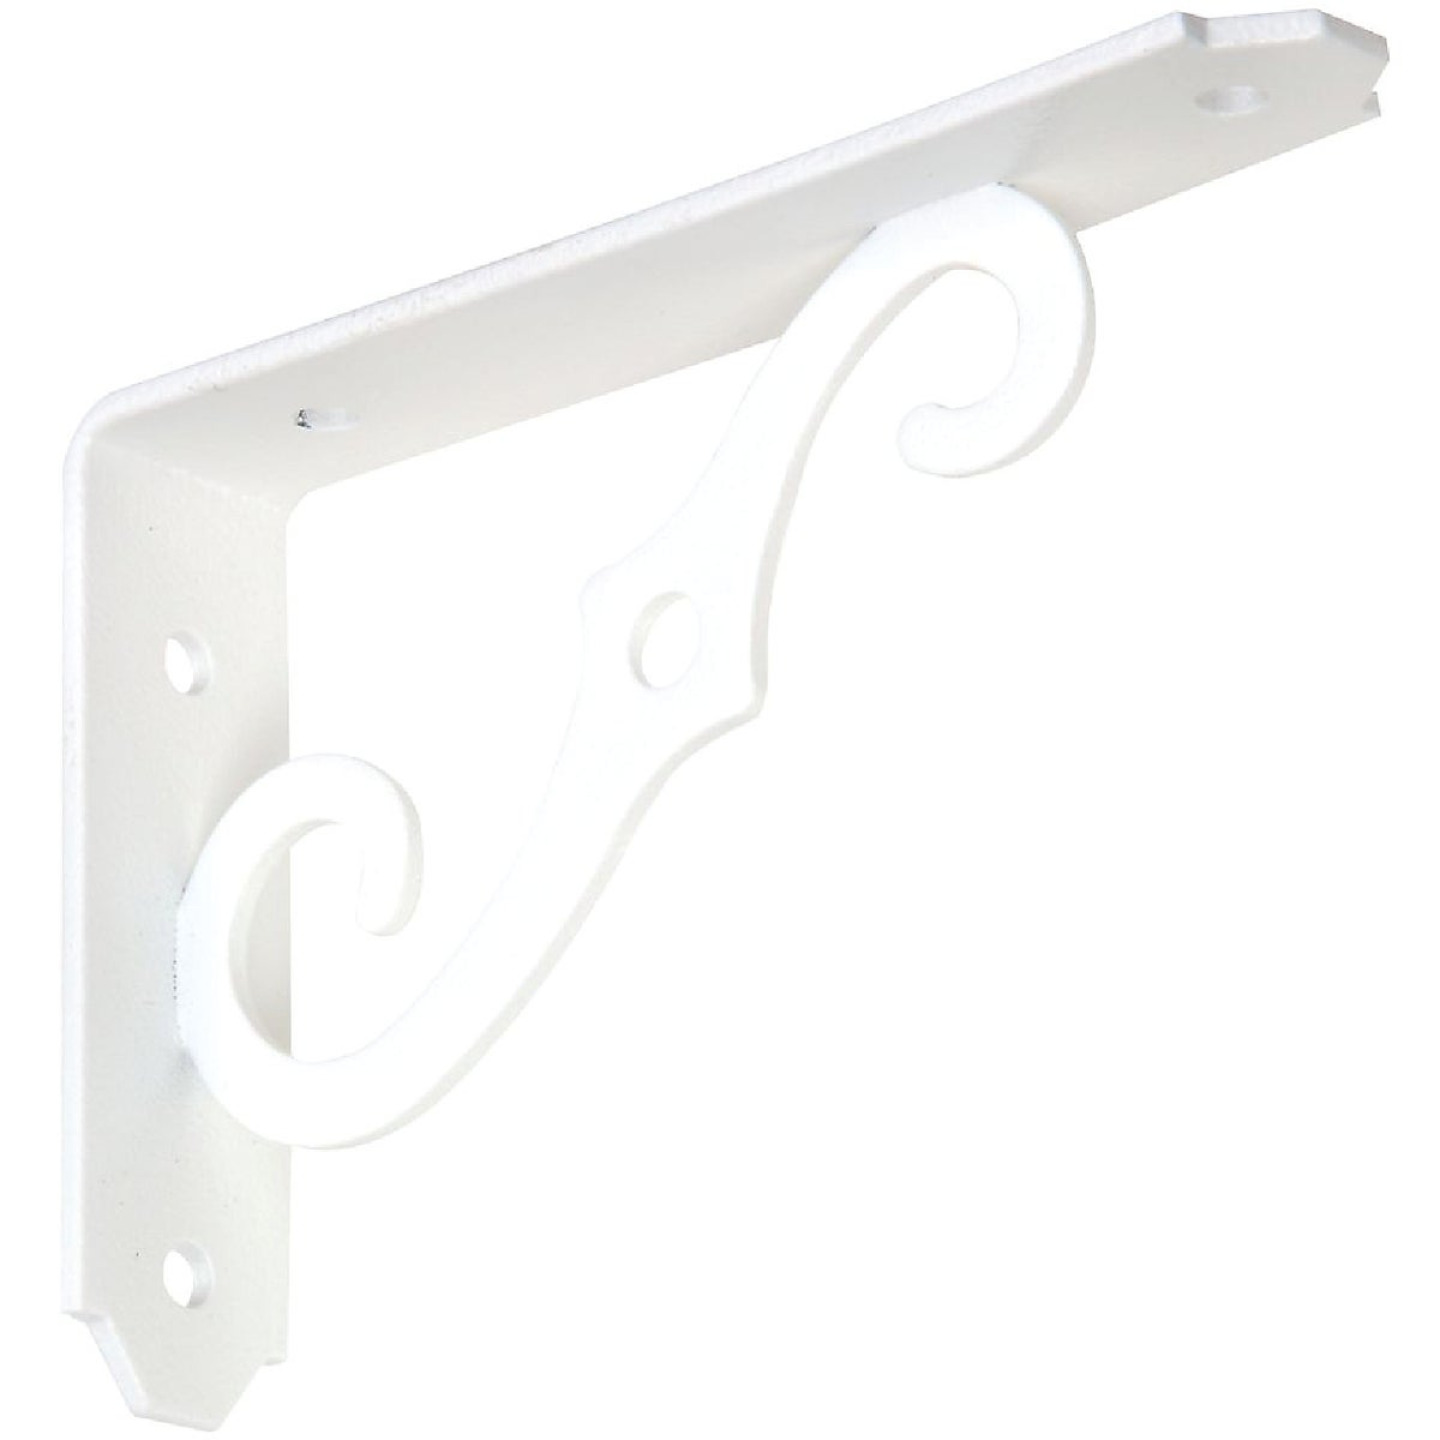 National 152 5 In. D. x 3-1/2 In. H. Antique White Steel Ornamental Shelf Bracket/Plant Hanger Image 1